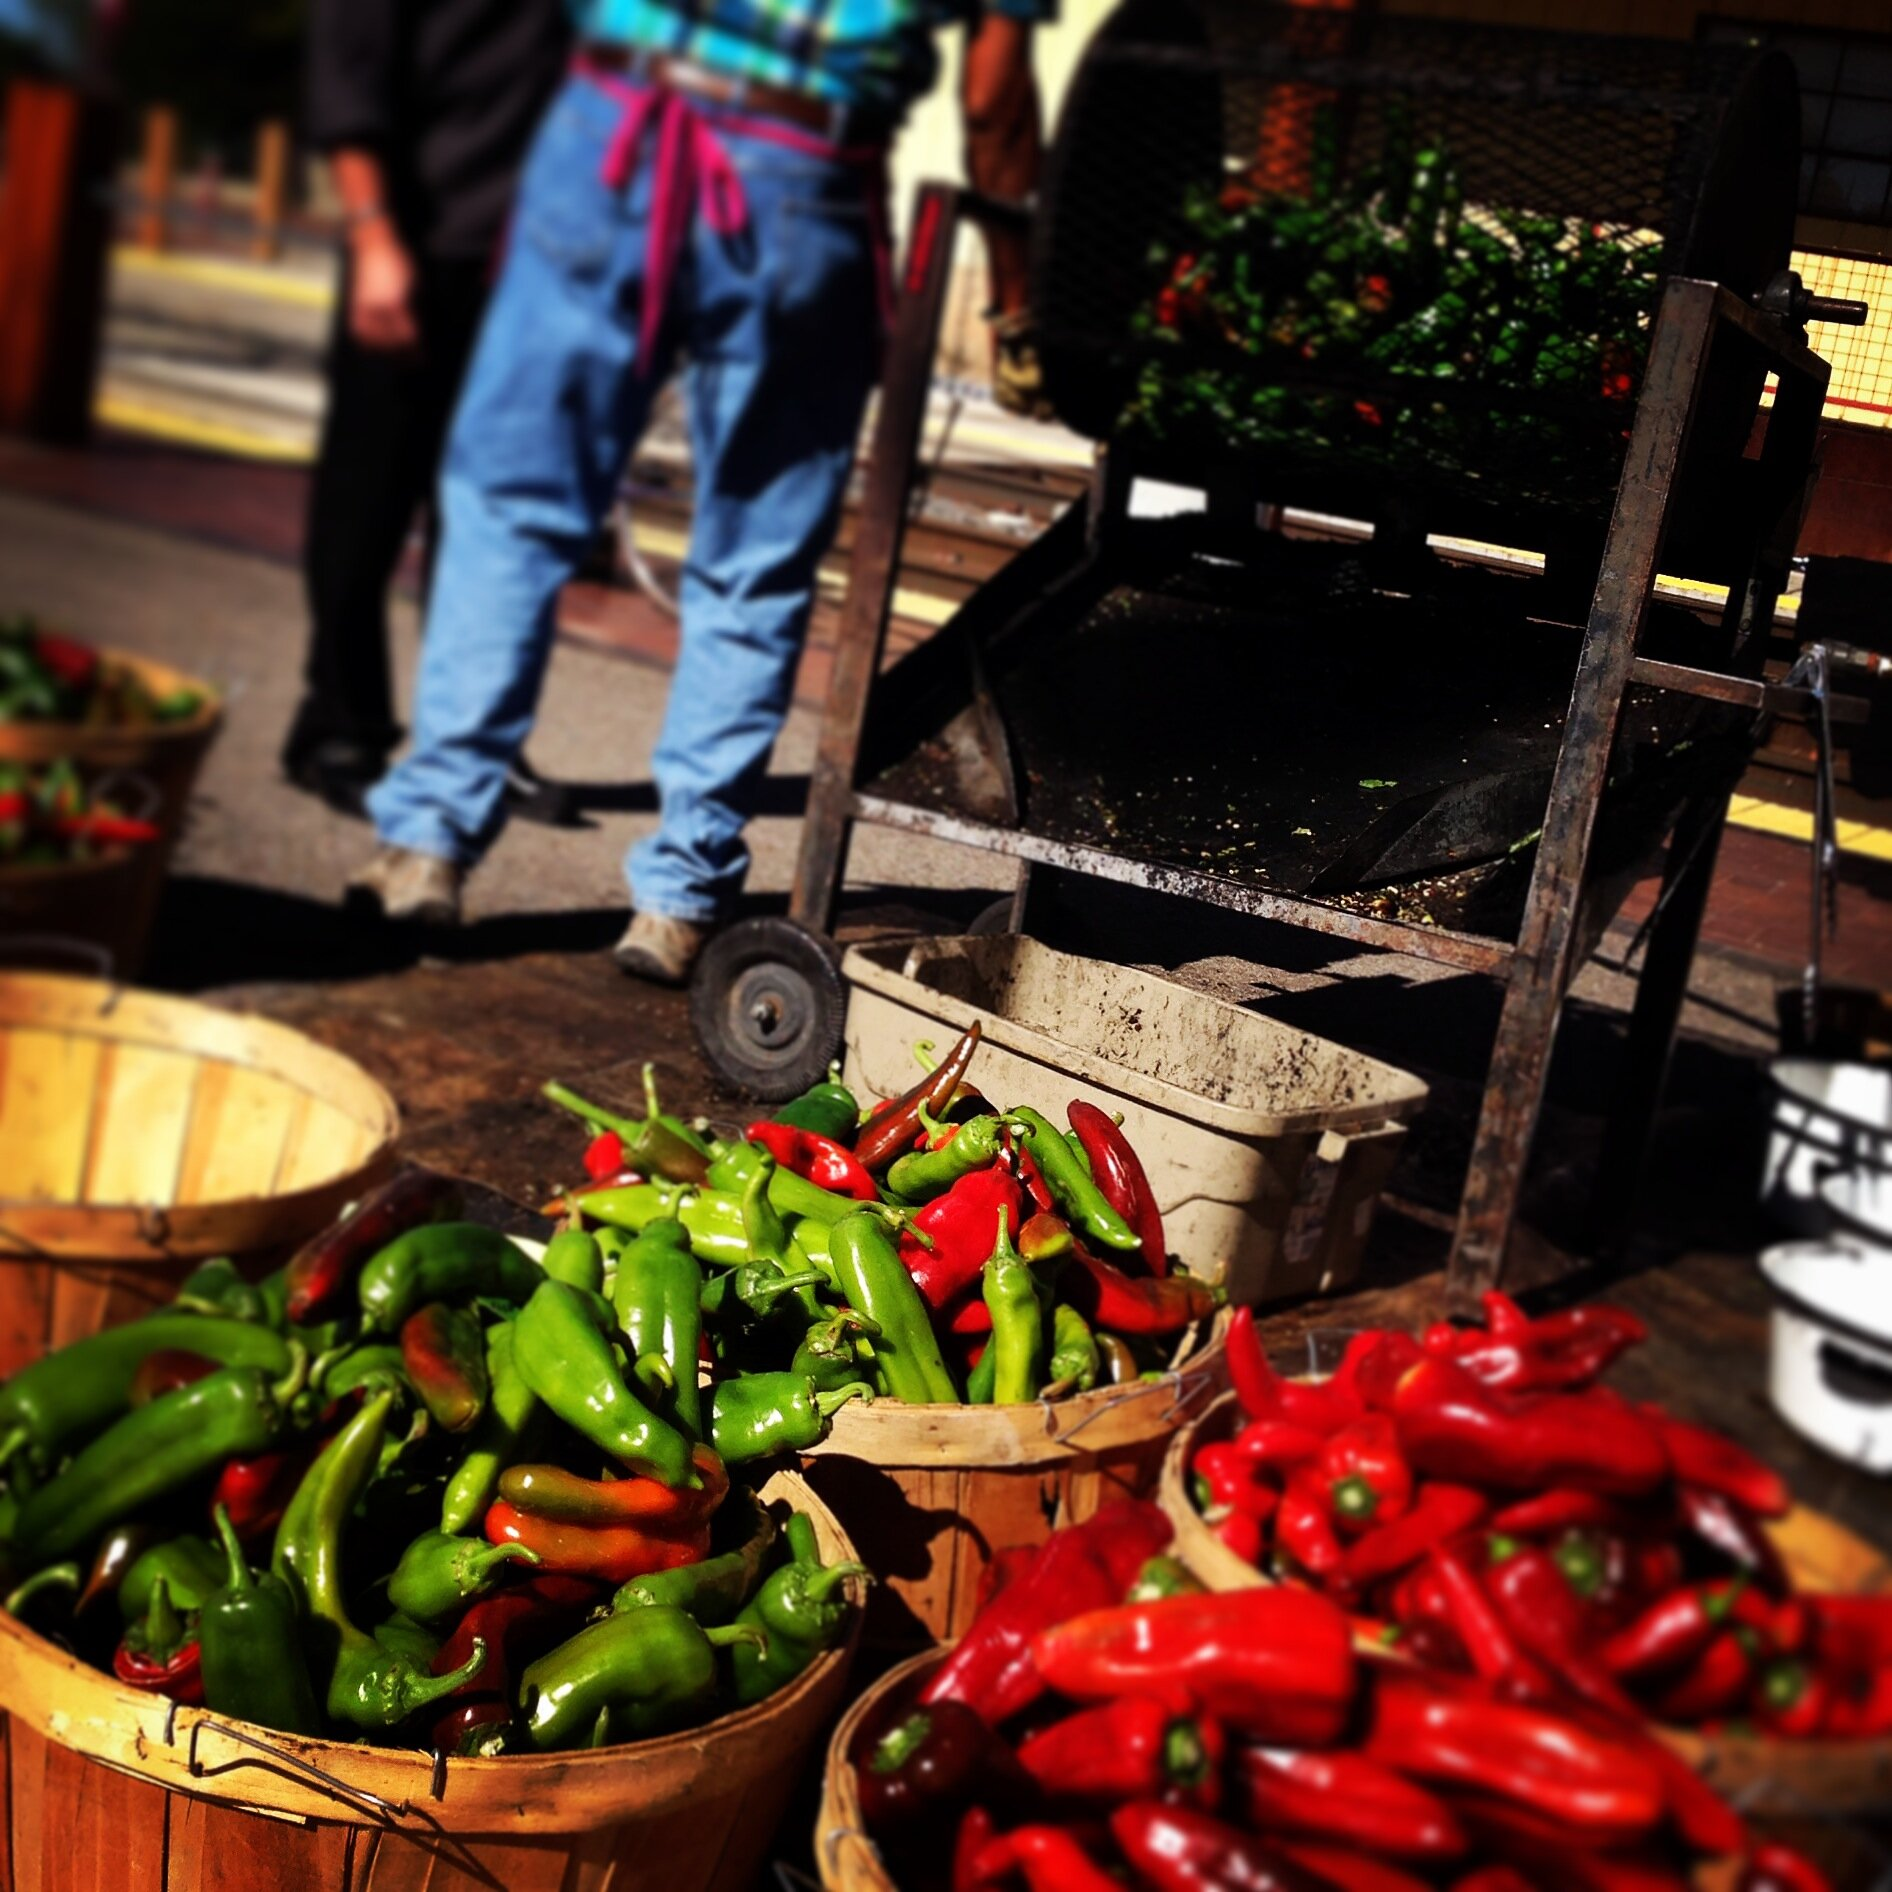 Fall is the perfect time to catch Matt Romero of Romero Farms and his live chile roasting demonstrations